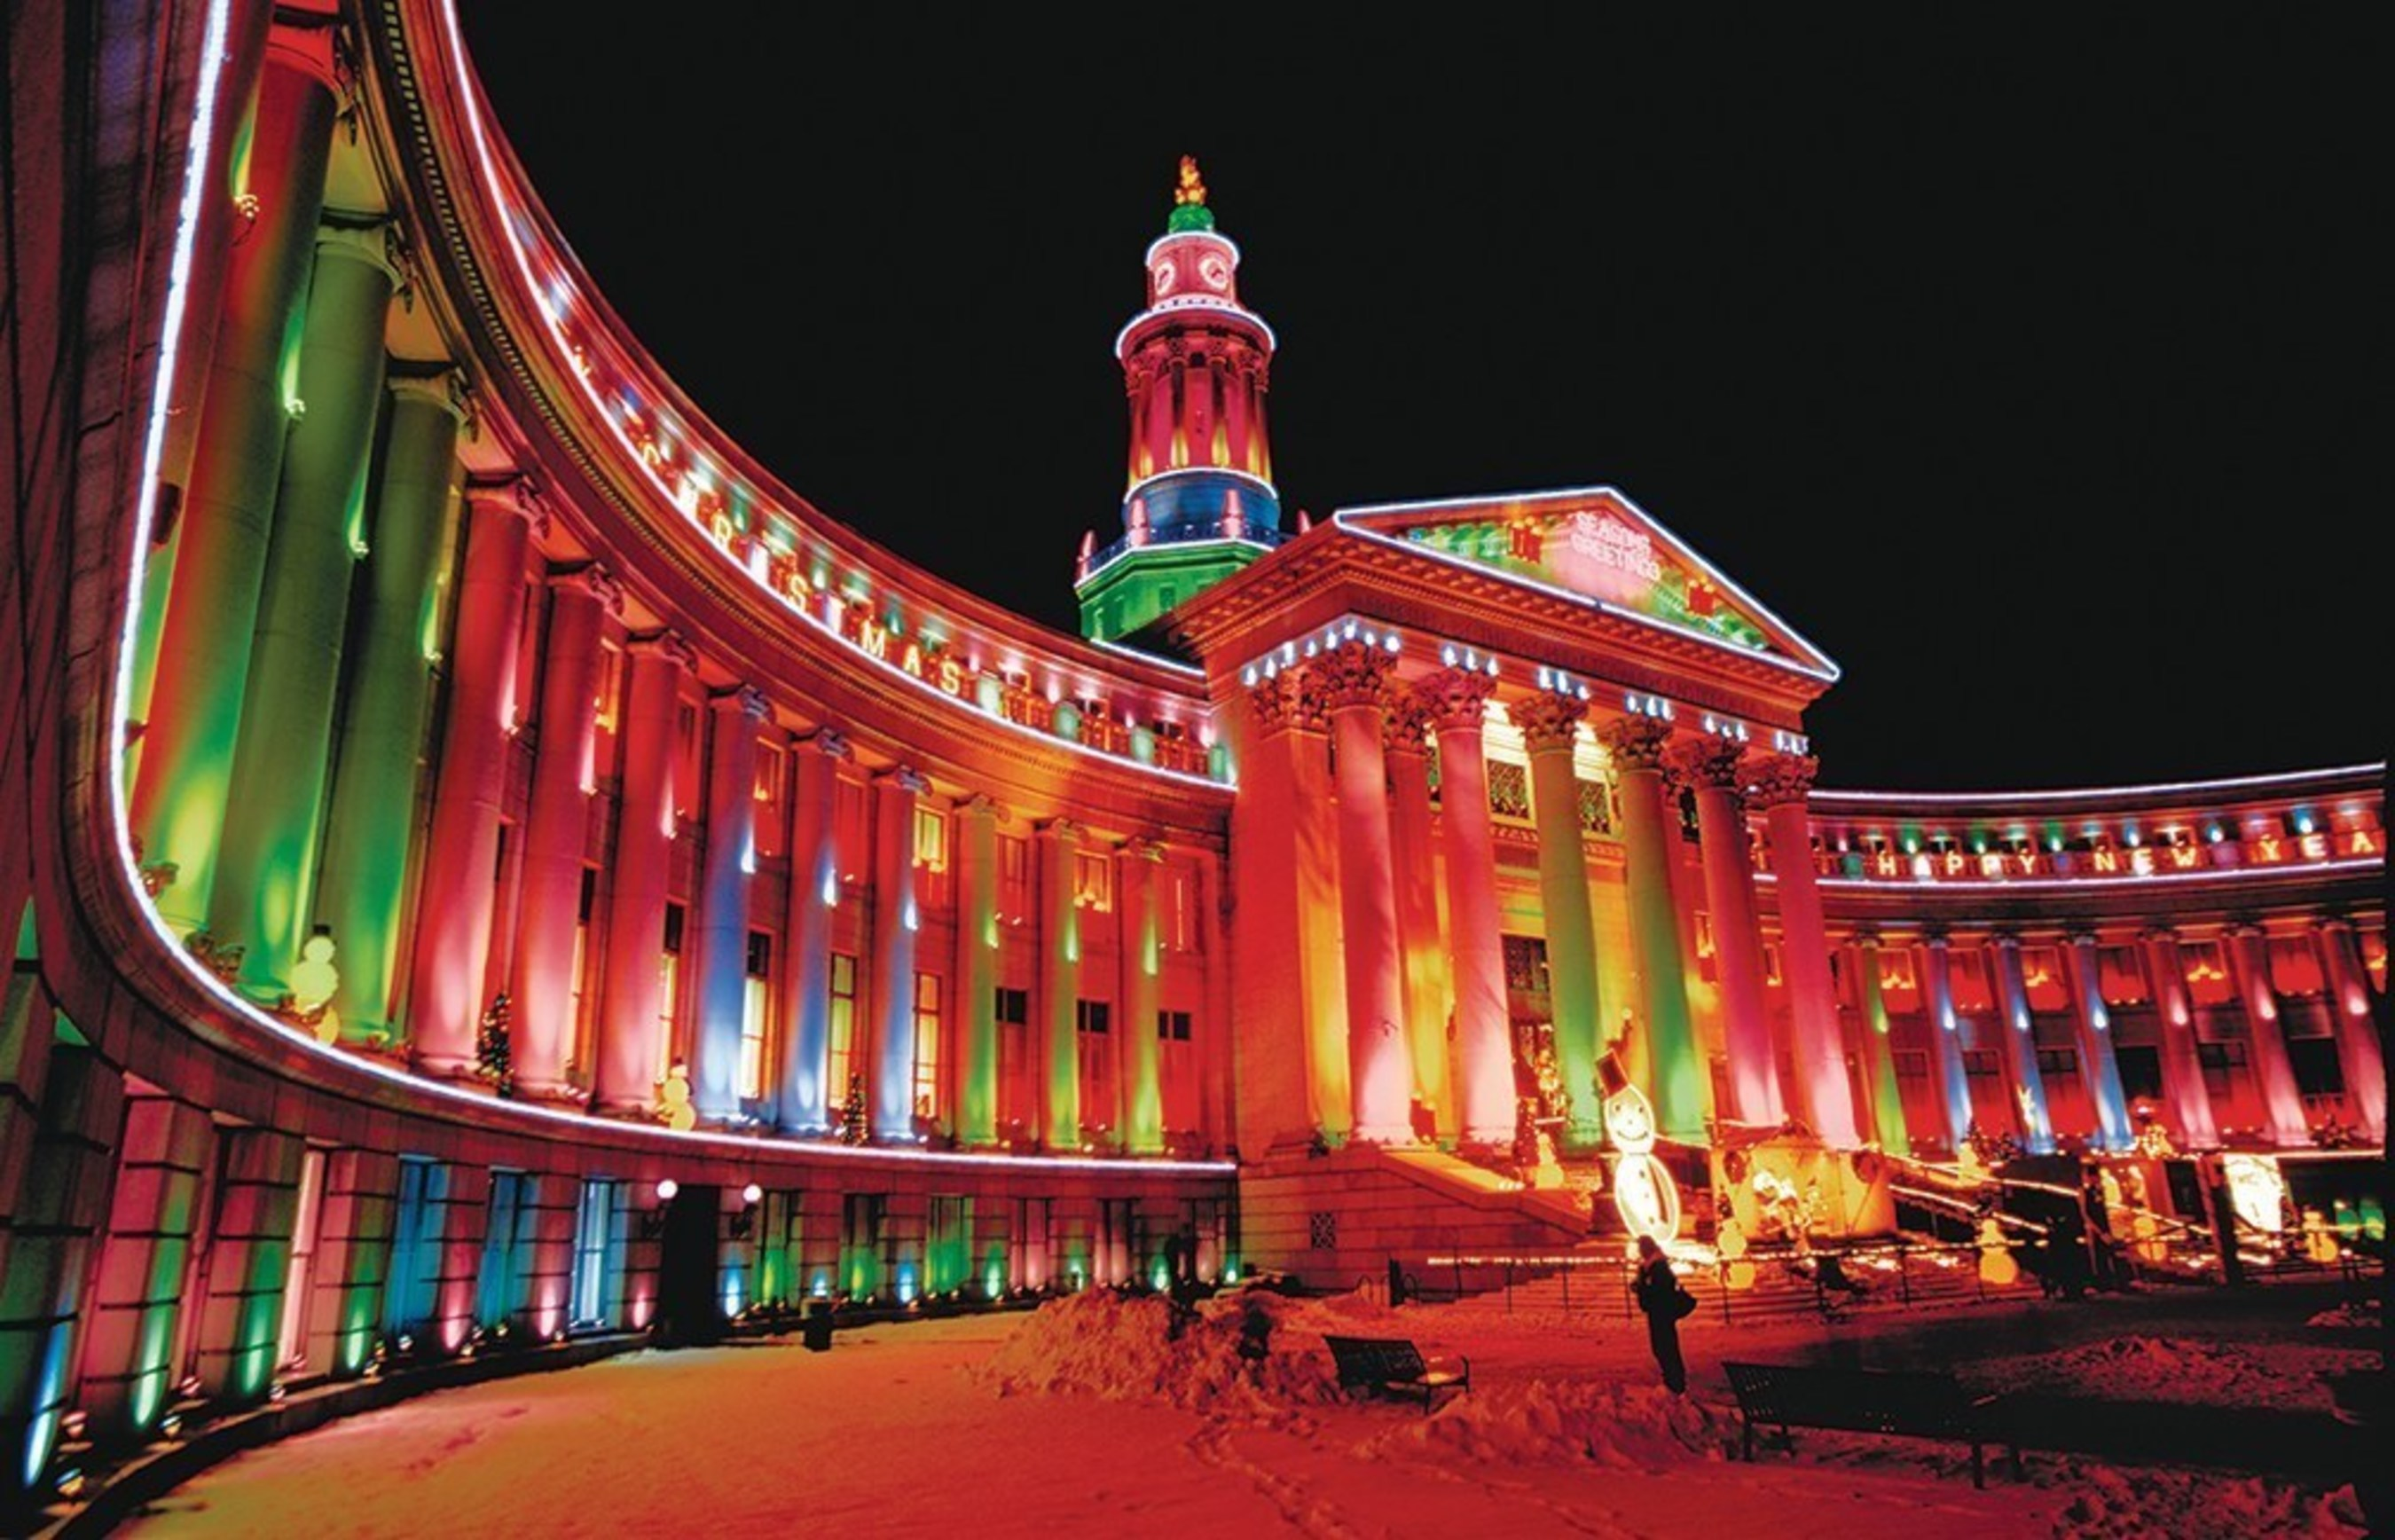 Denver's Mile High Holidays Bring Magic to the City with Special Events, Spectacular Citywide